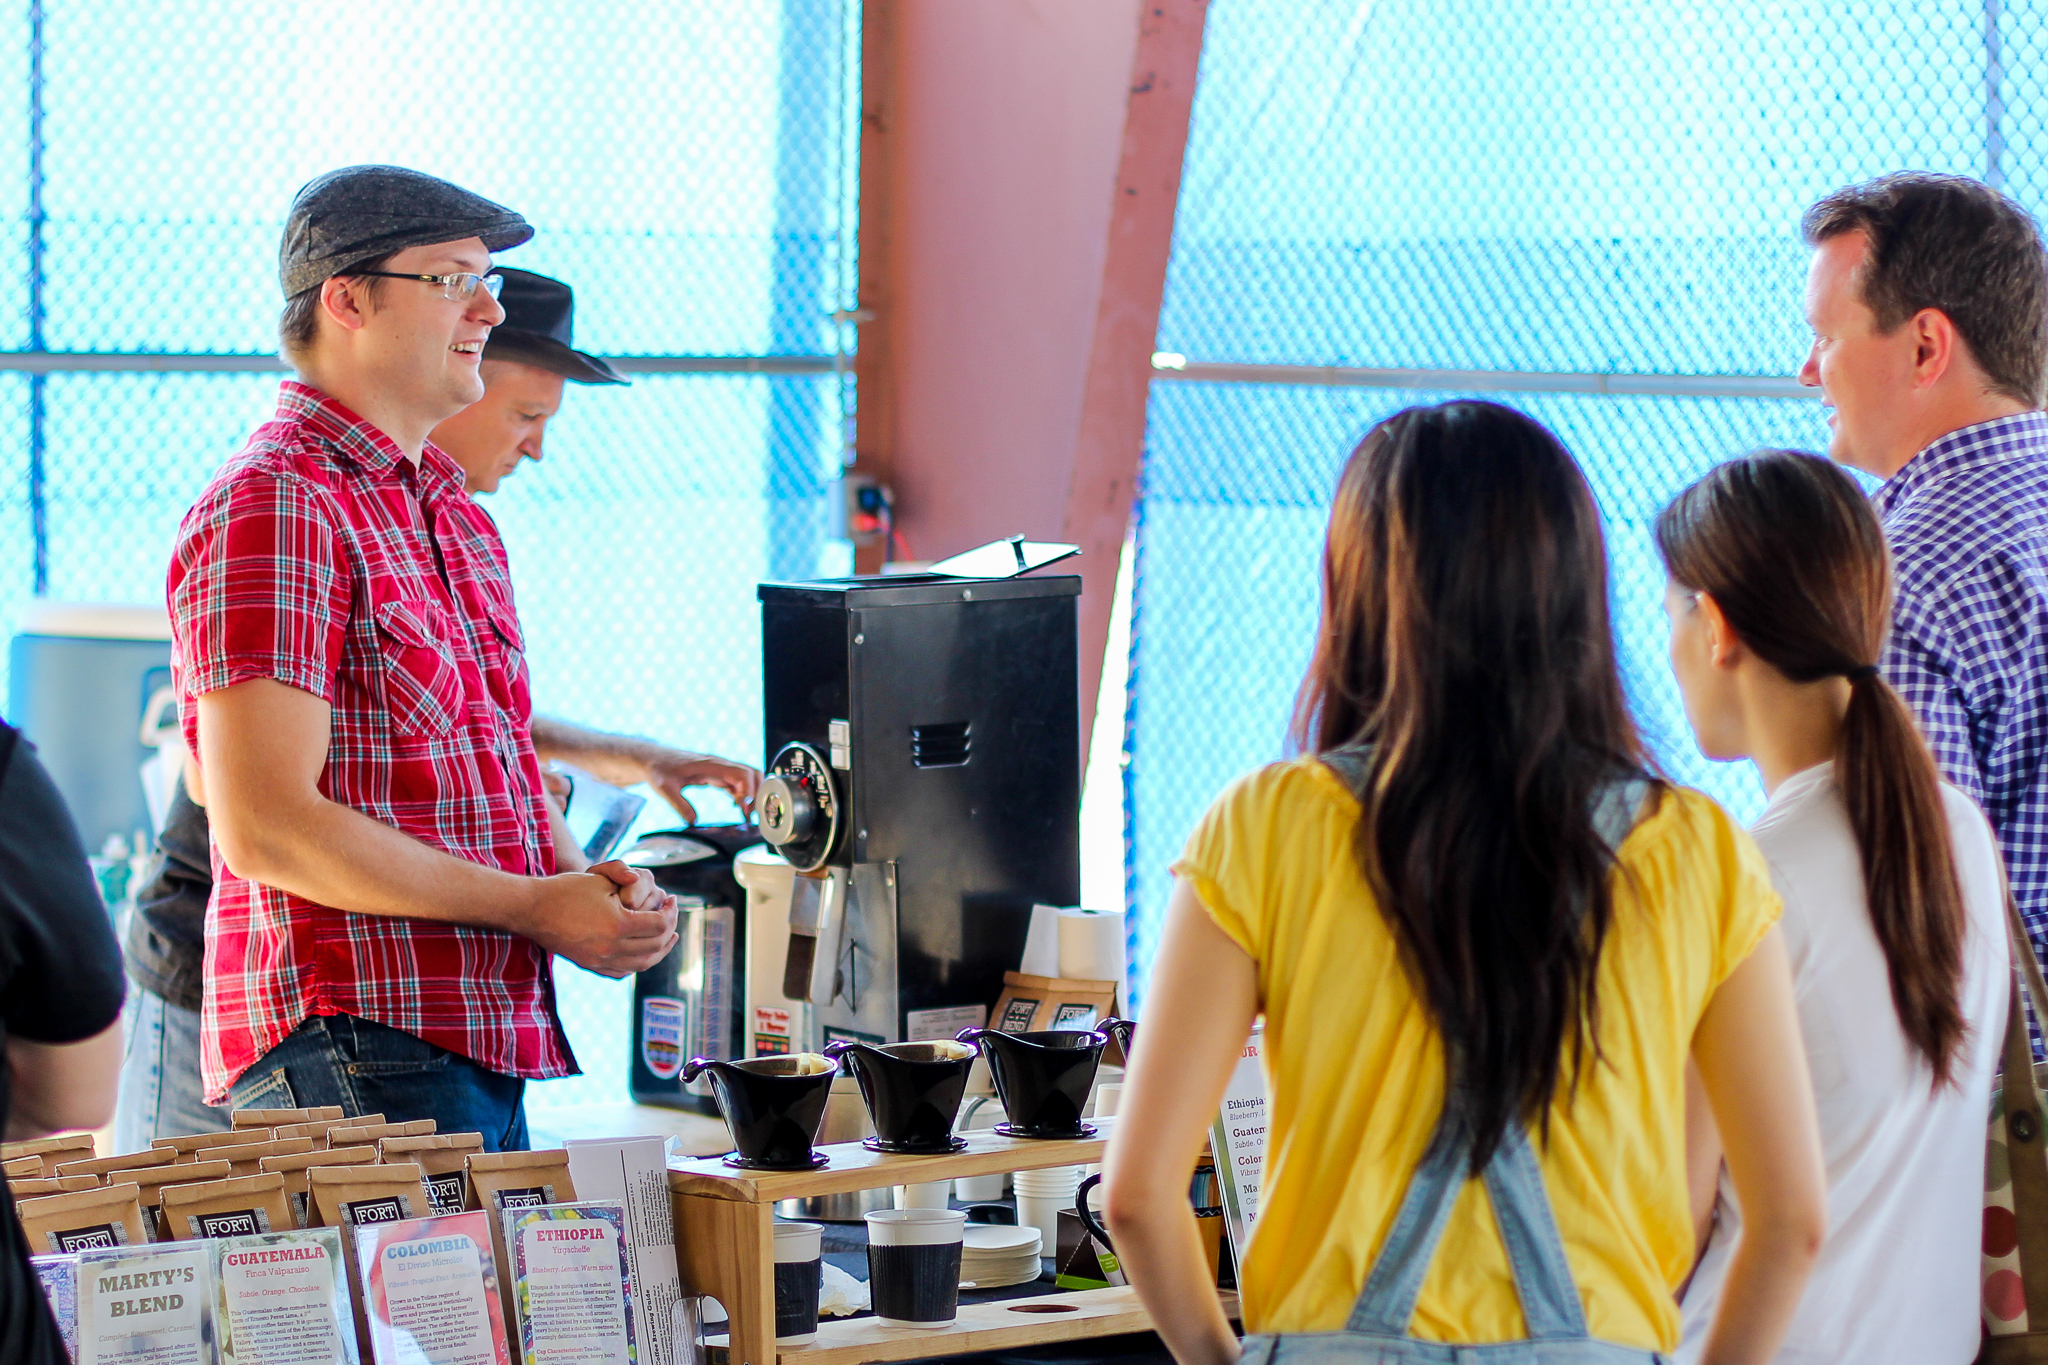 Pour-over coffee at the market.